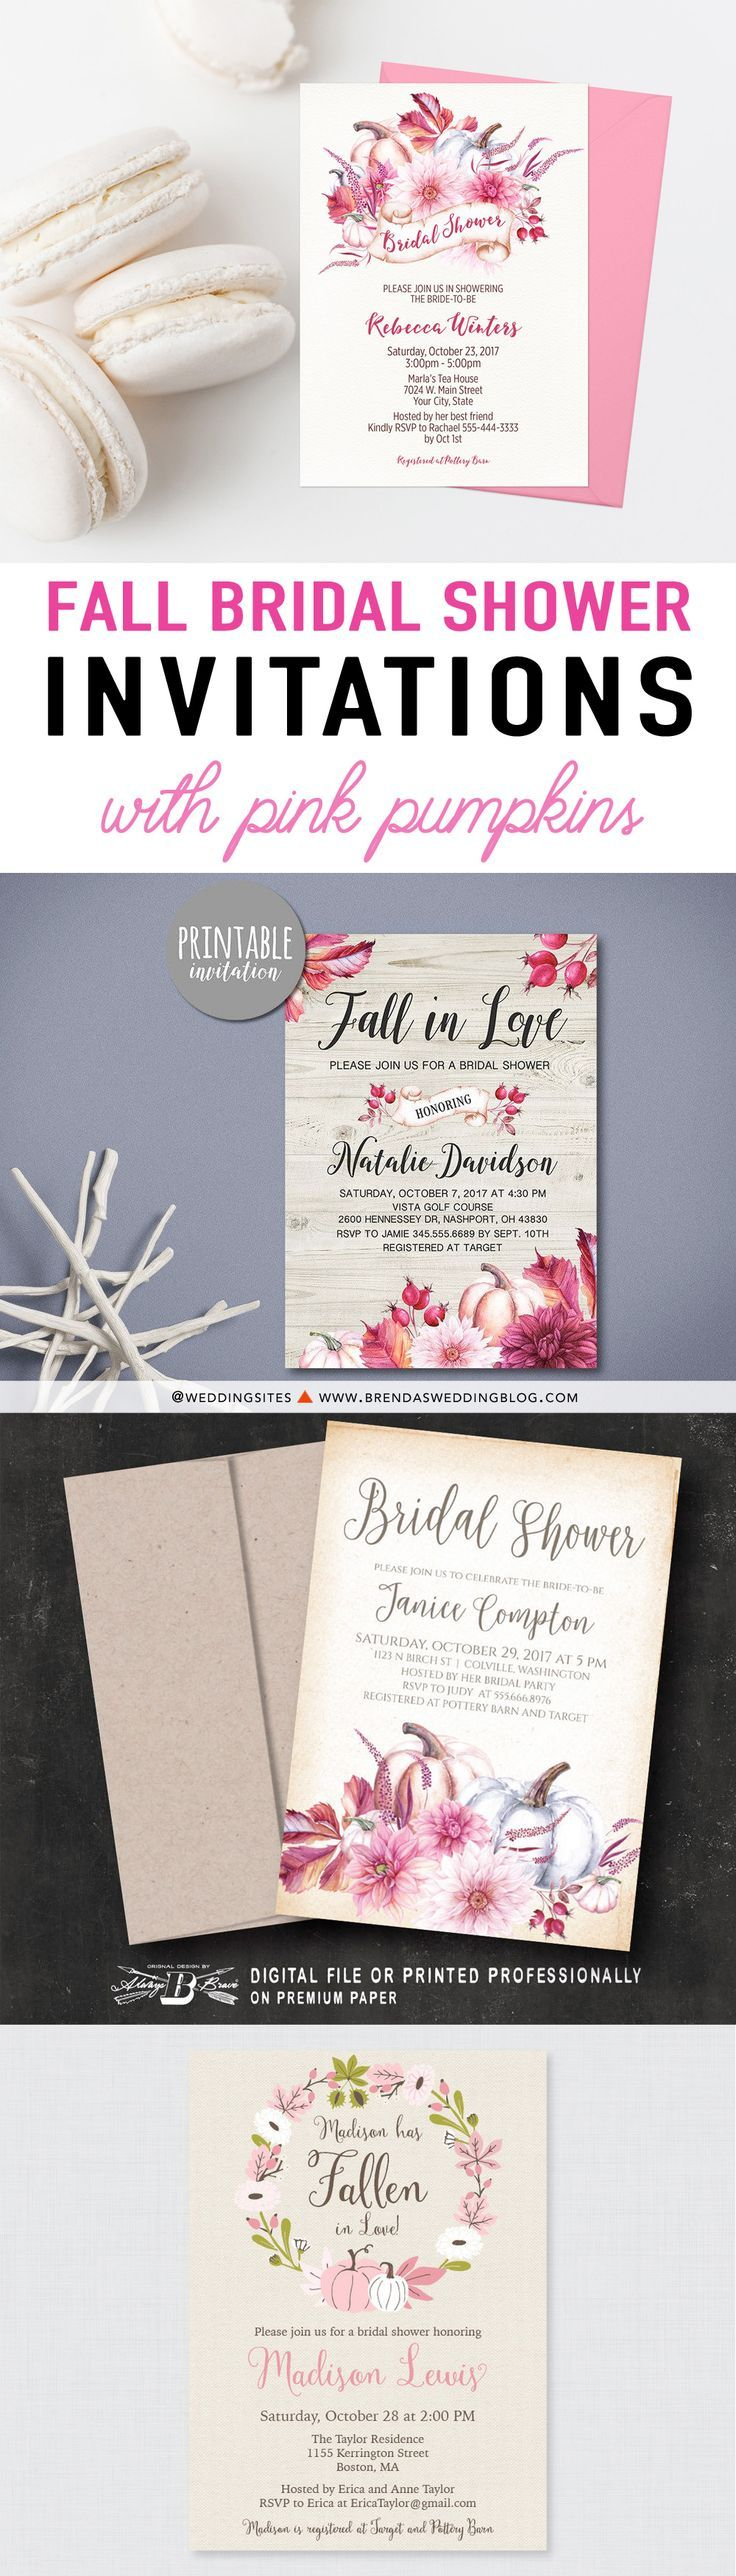 Printable Fall Bridal Shower Invitations with pumpkins, pretty pink flowers and leaves. Autumn Bridal Shower Invitations. Fall Wedding Invitations. Pink Pumpkin Bridal Shower Inspiration. as seen in Decorating for Fall Parties with Pink and Gold Pumpkins on Brenda's Wedding Blog www.brendasweddingblog.com